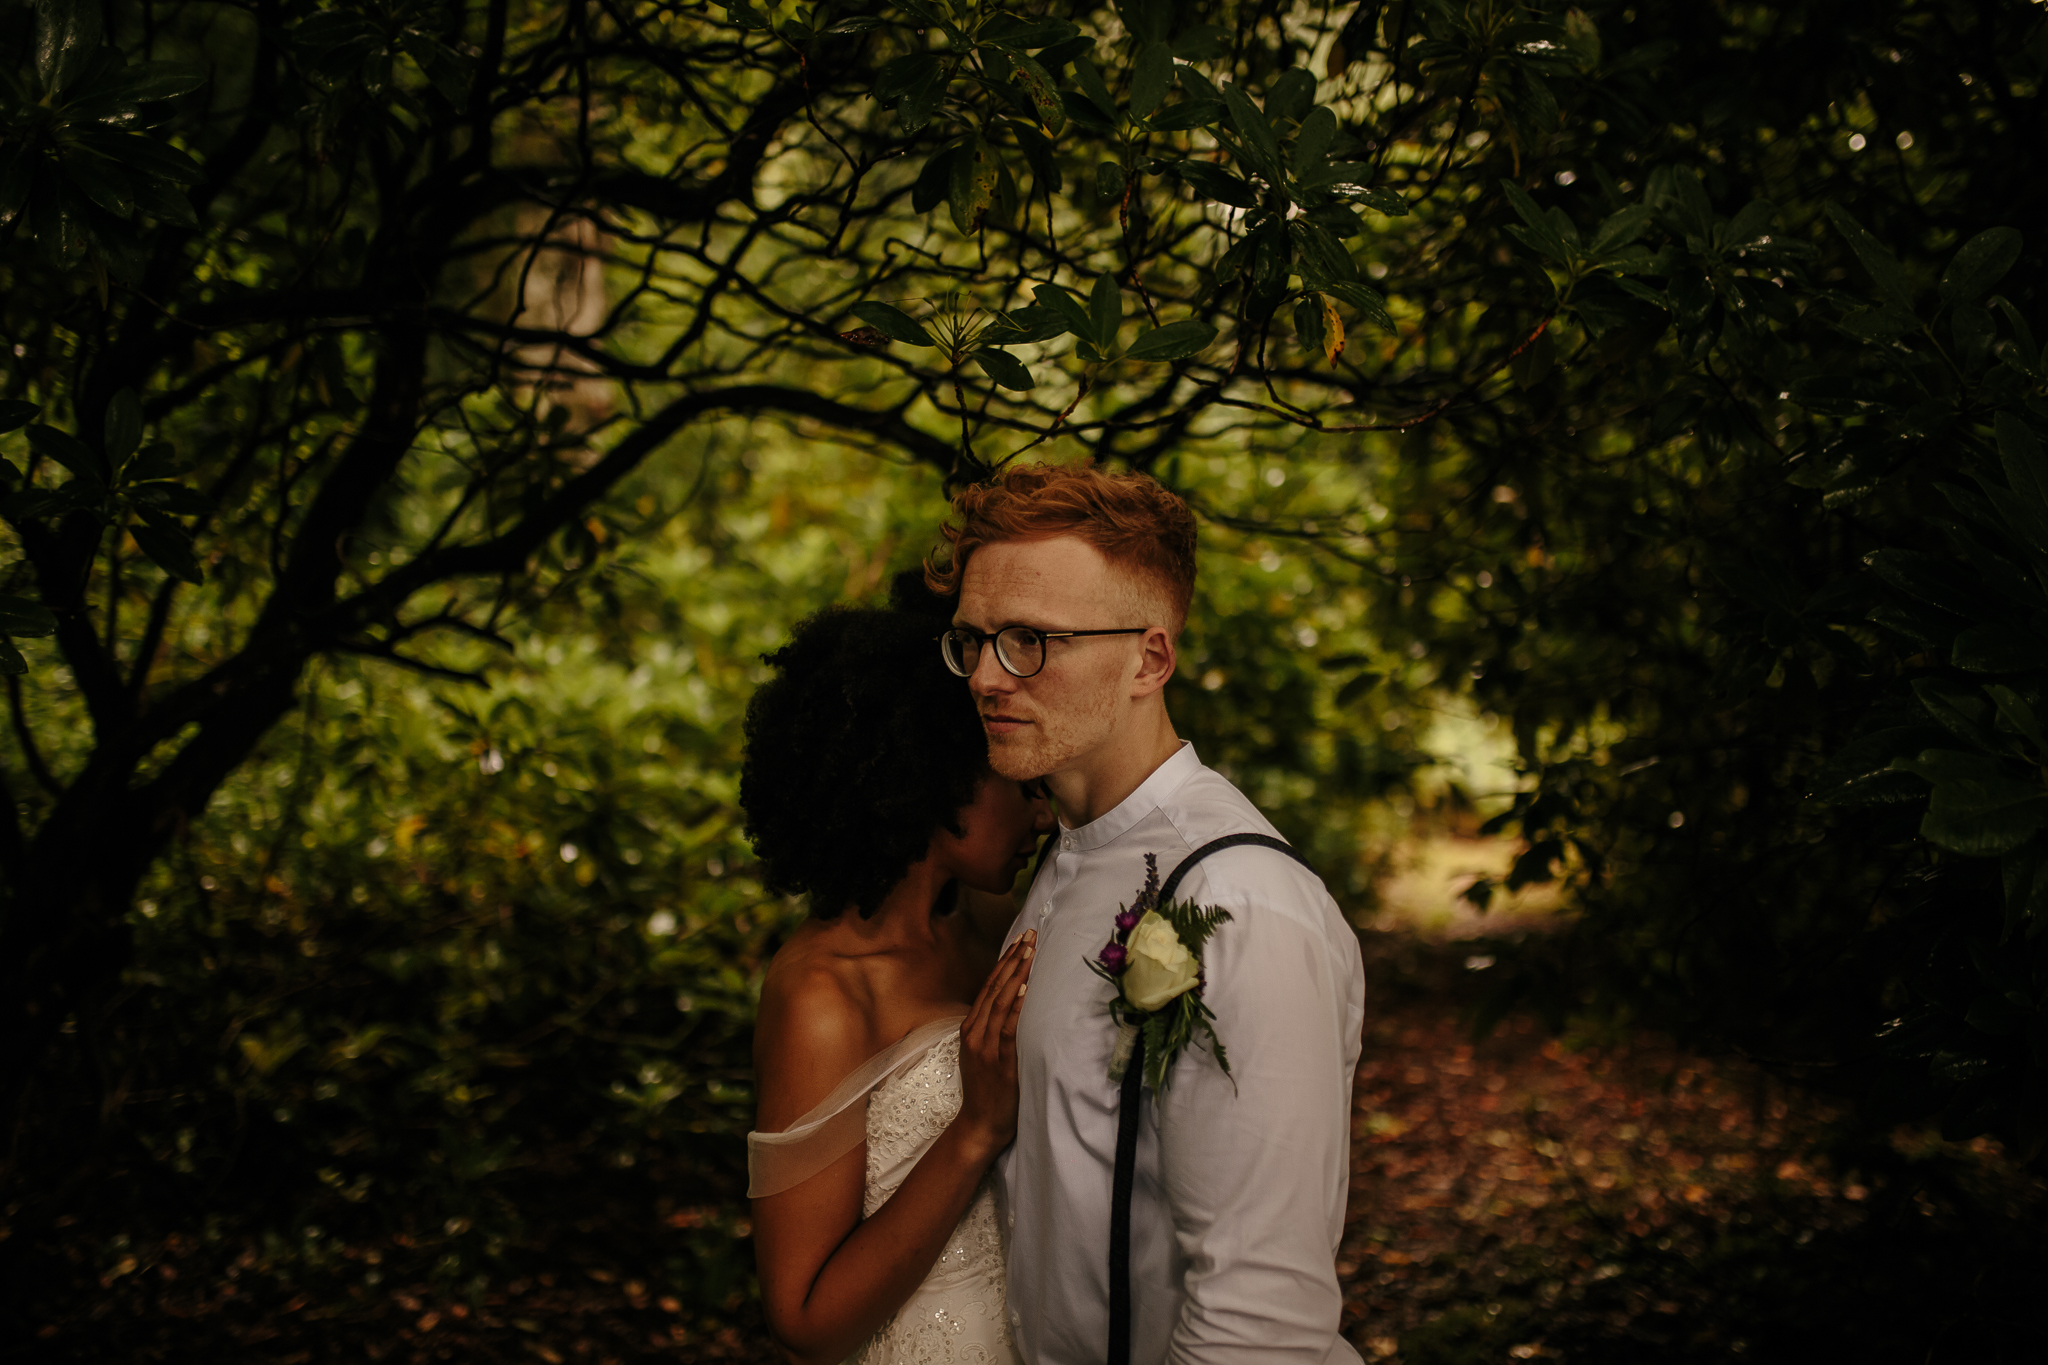 Victoria & Jamie - WeddingsbyQay - Wedding Photographer (157 of 209).jpg